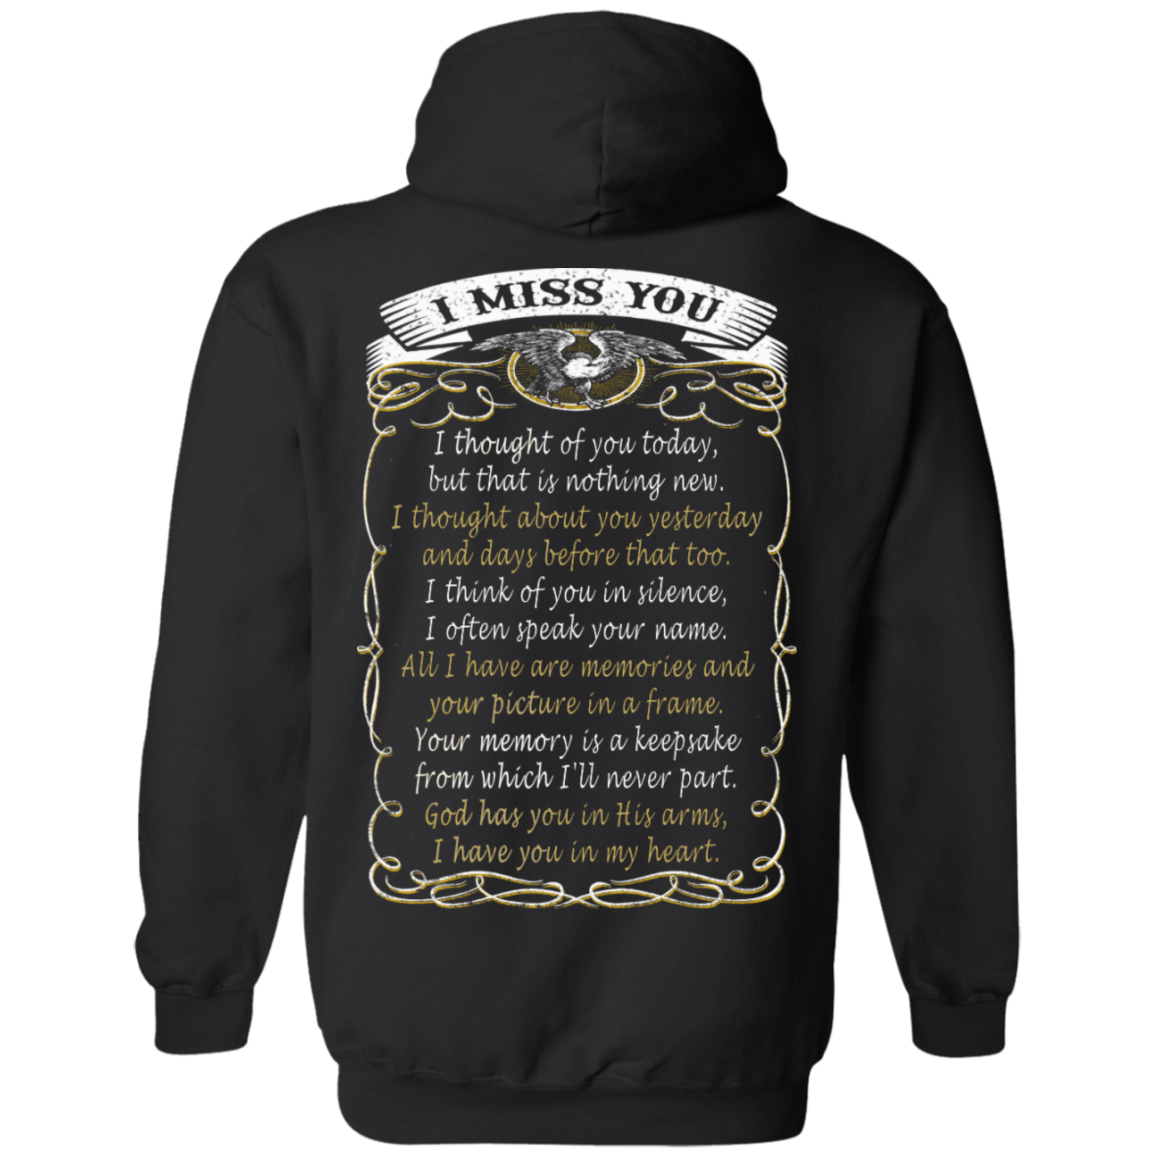 I MISS YOU HOODIE, LONG SLEEVE